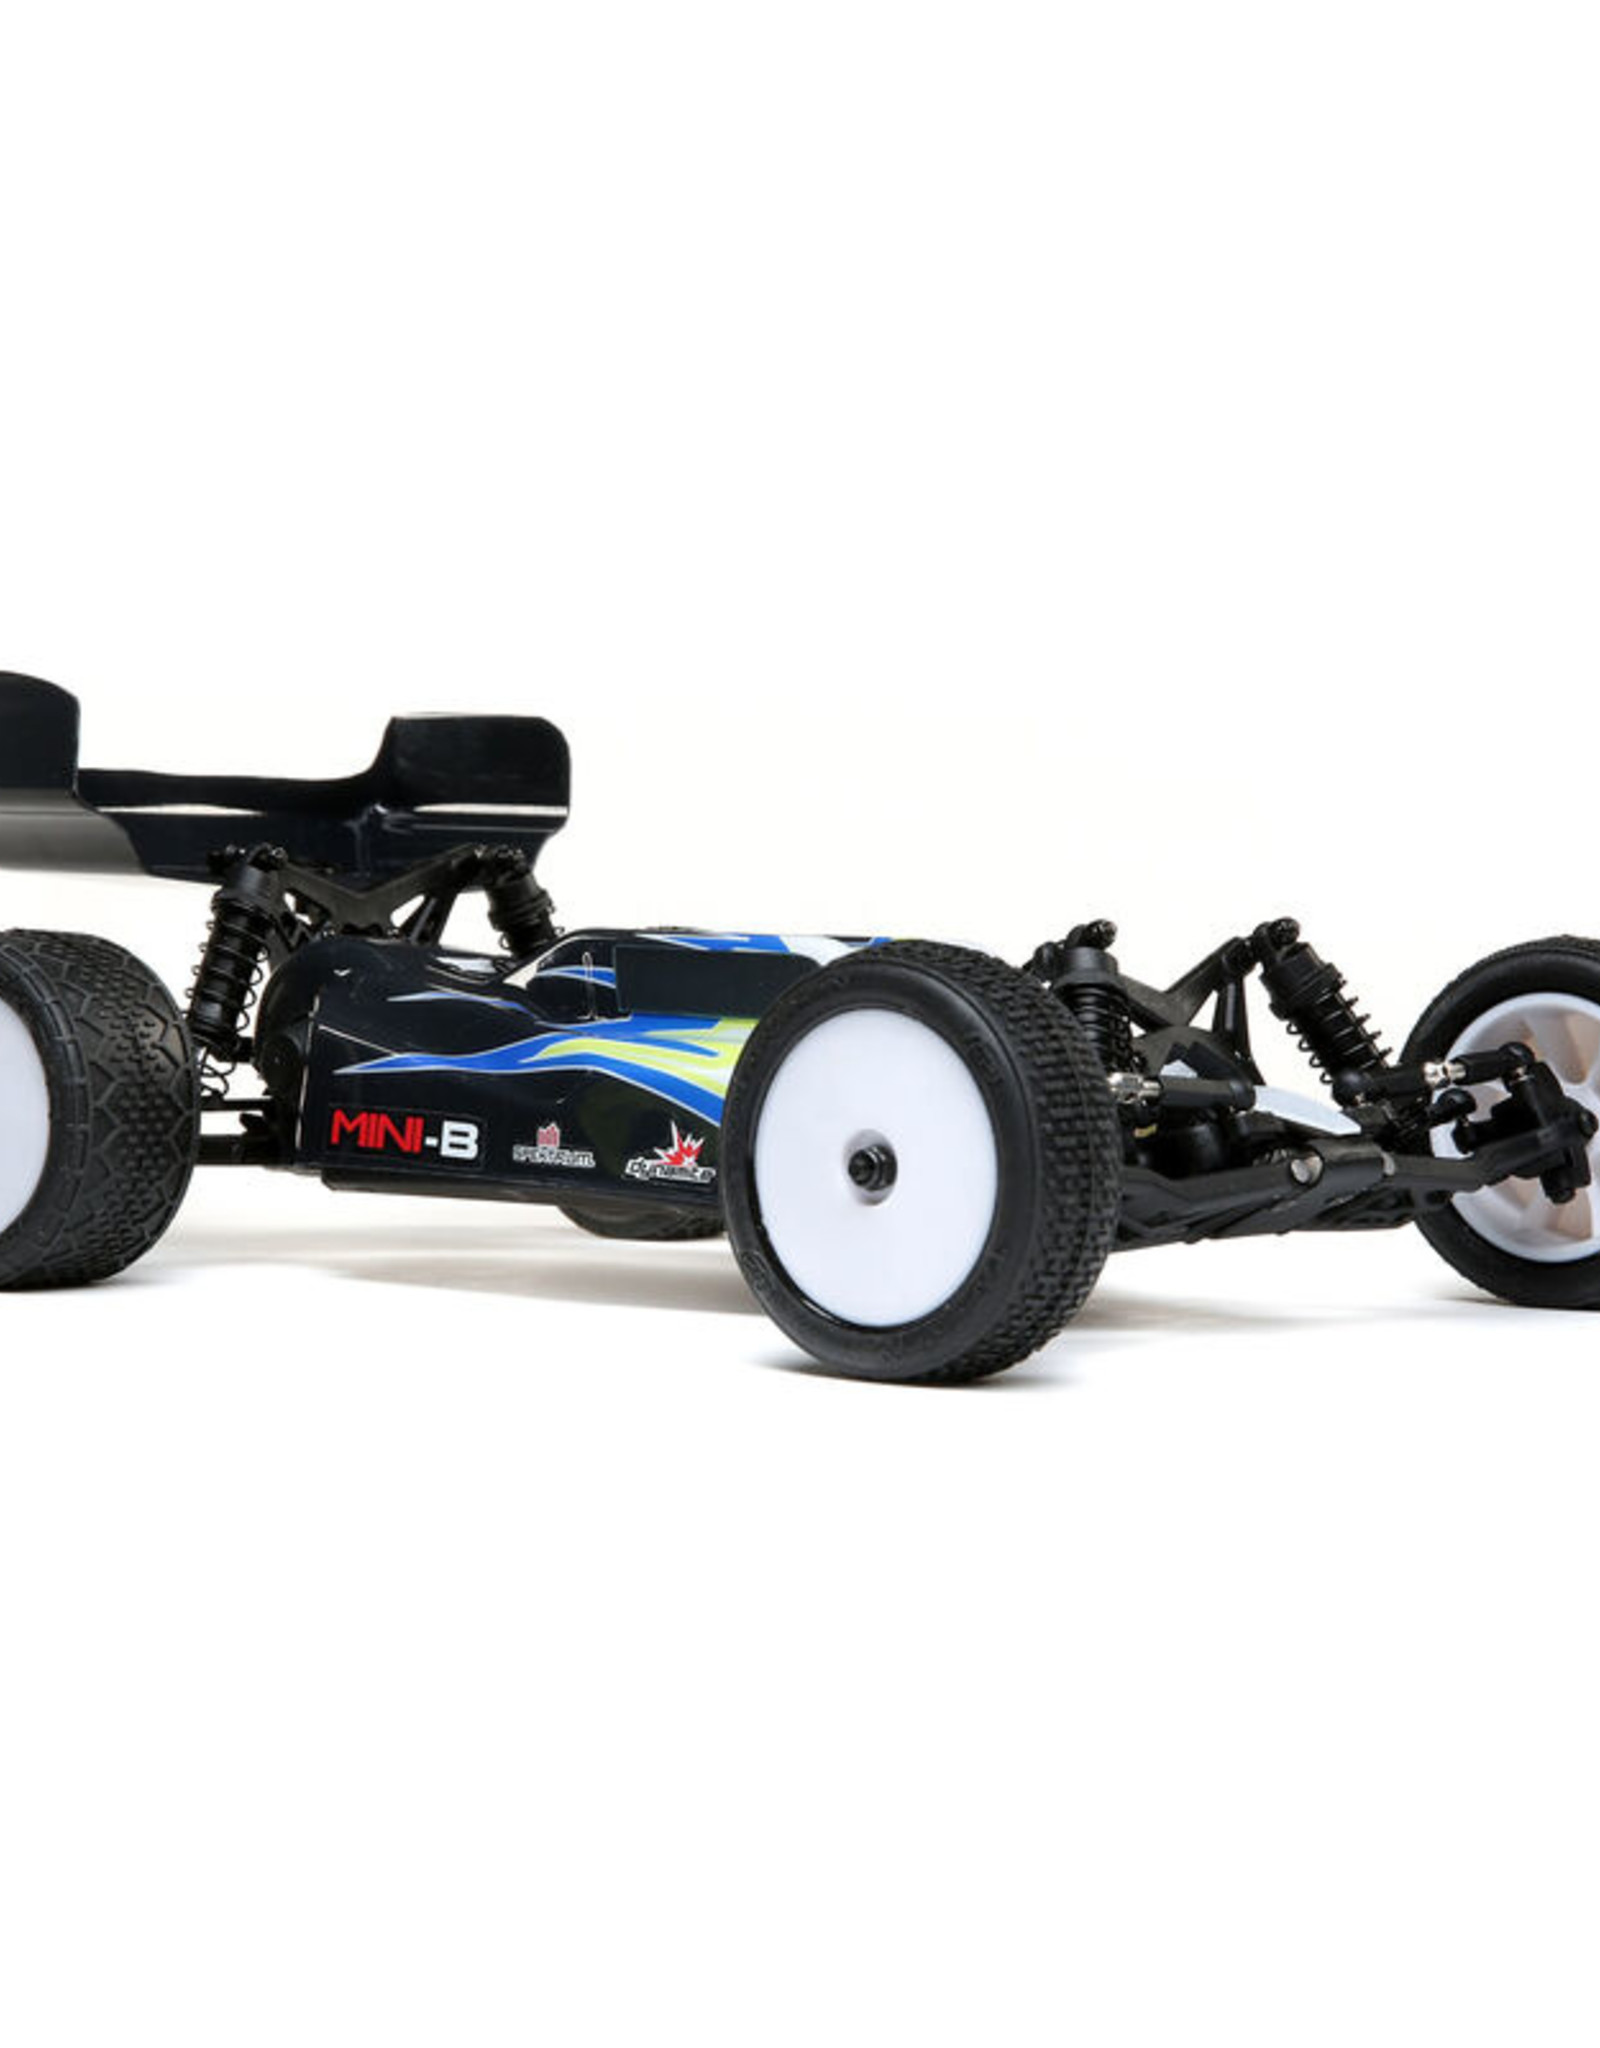 losi Losi 1/16 Mini-B Brushed RTR 2WD Buggy, Black/White